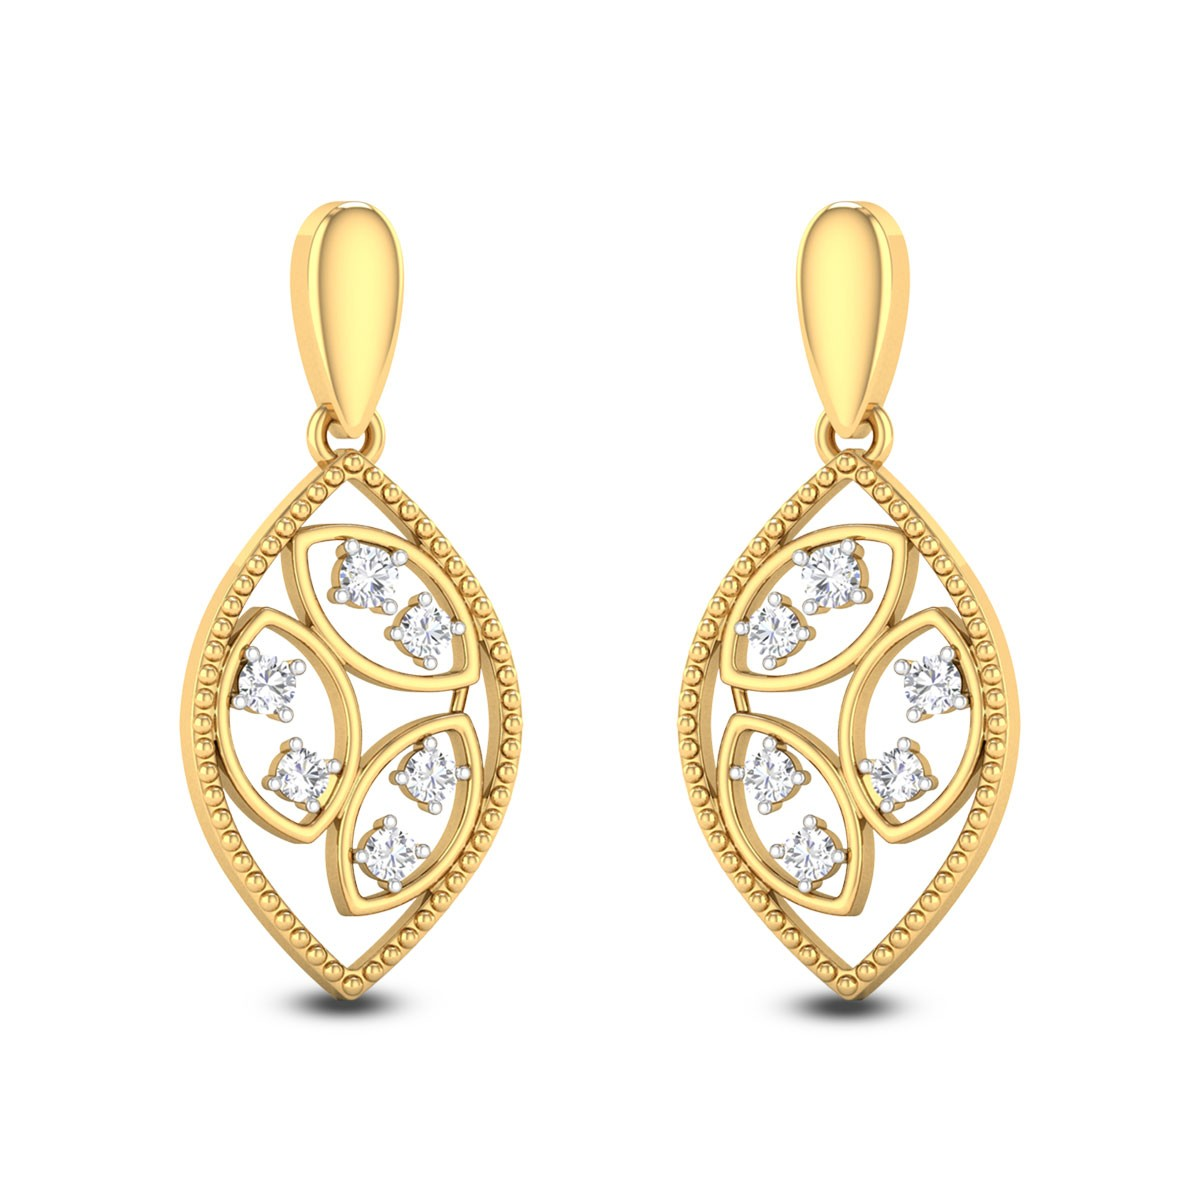 Oliva Diamond Earrings